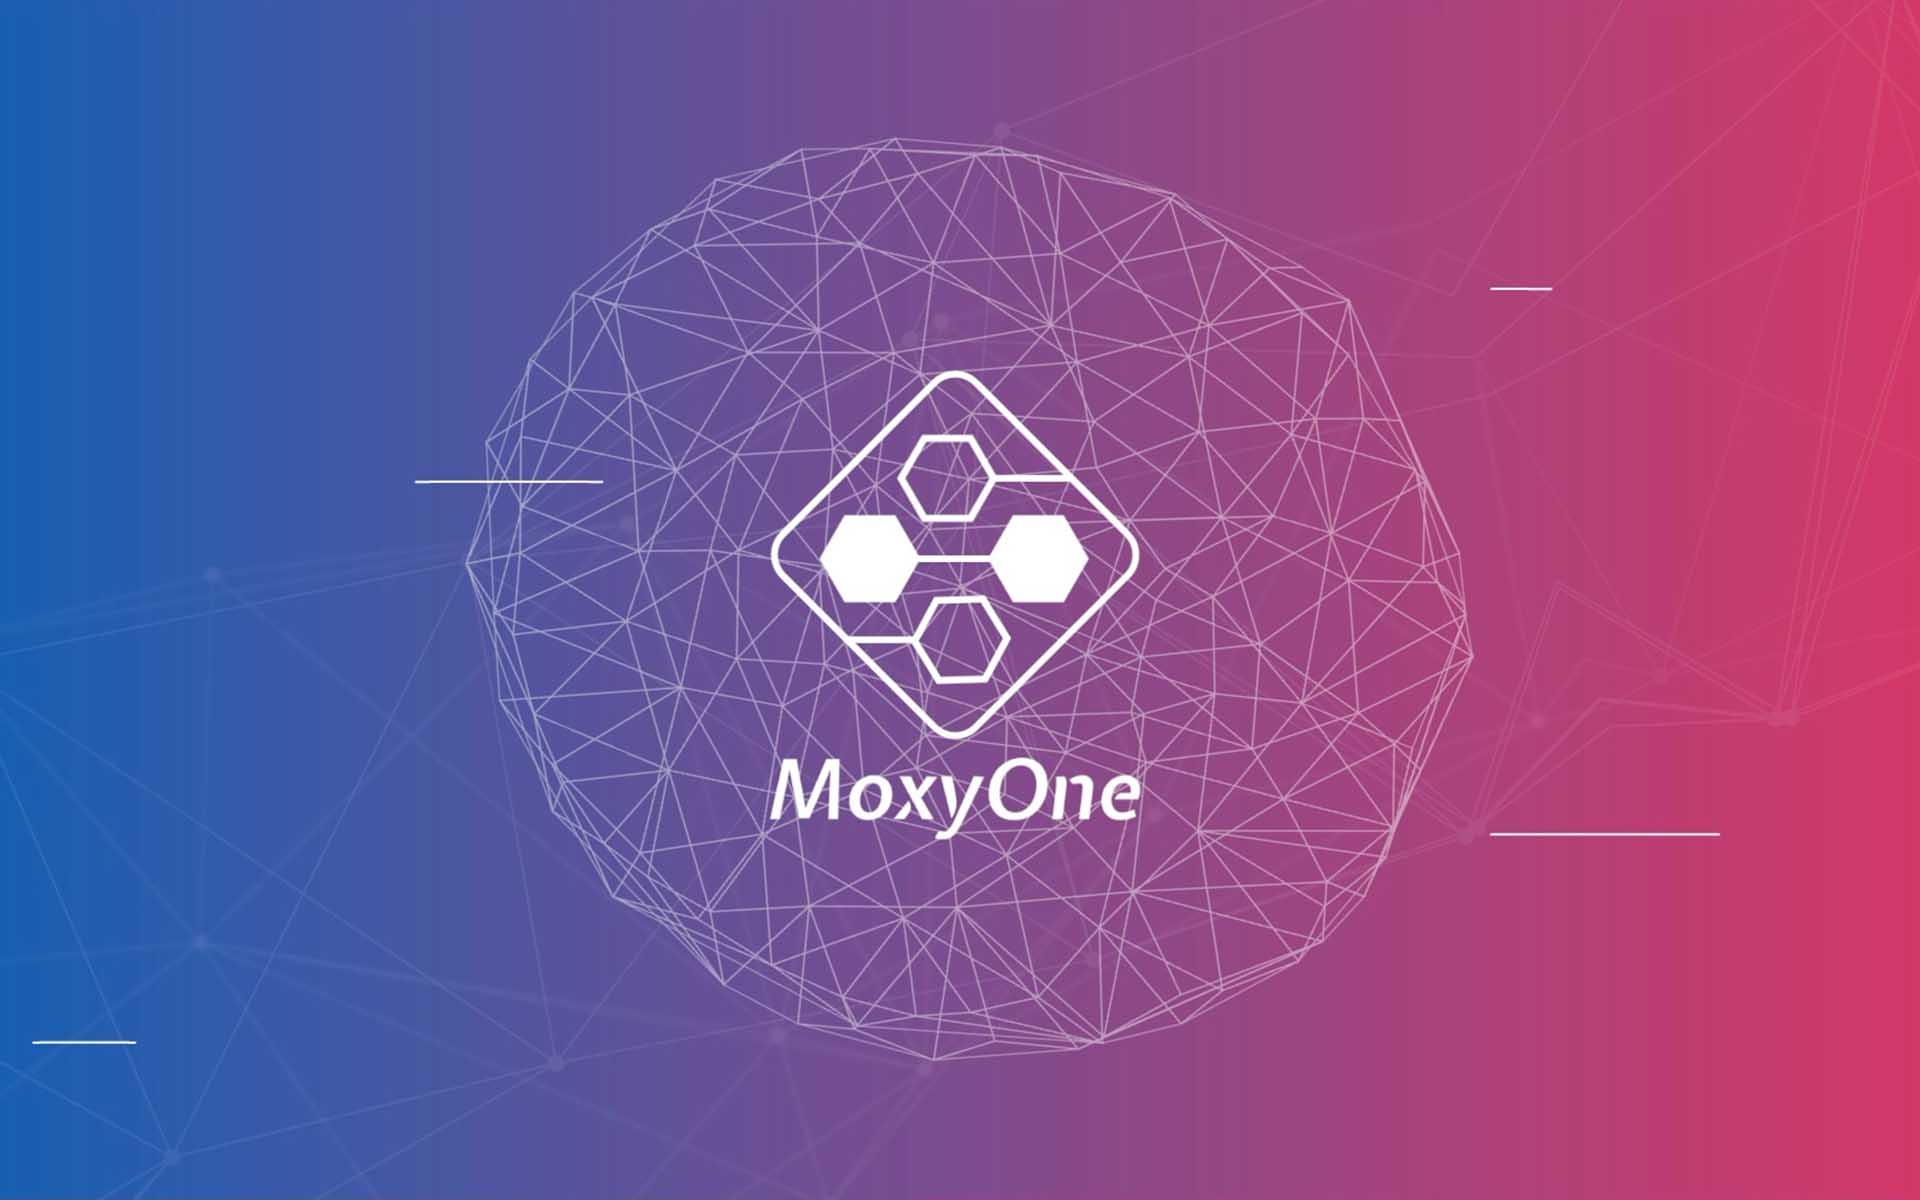 Australian Based MoxyOne is Offering ICO's White Labelled Debit Card Infrastructure